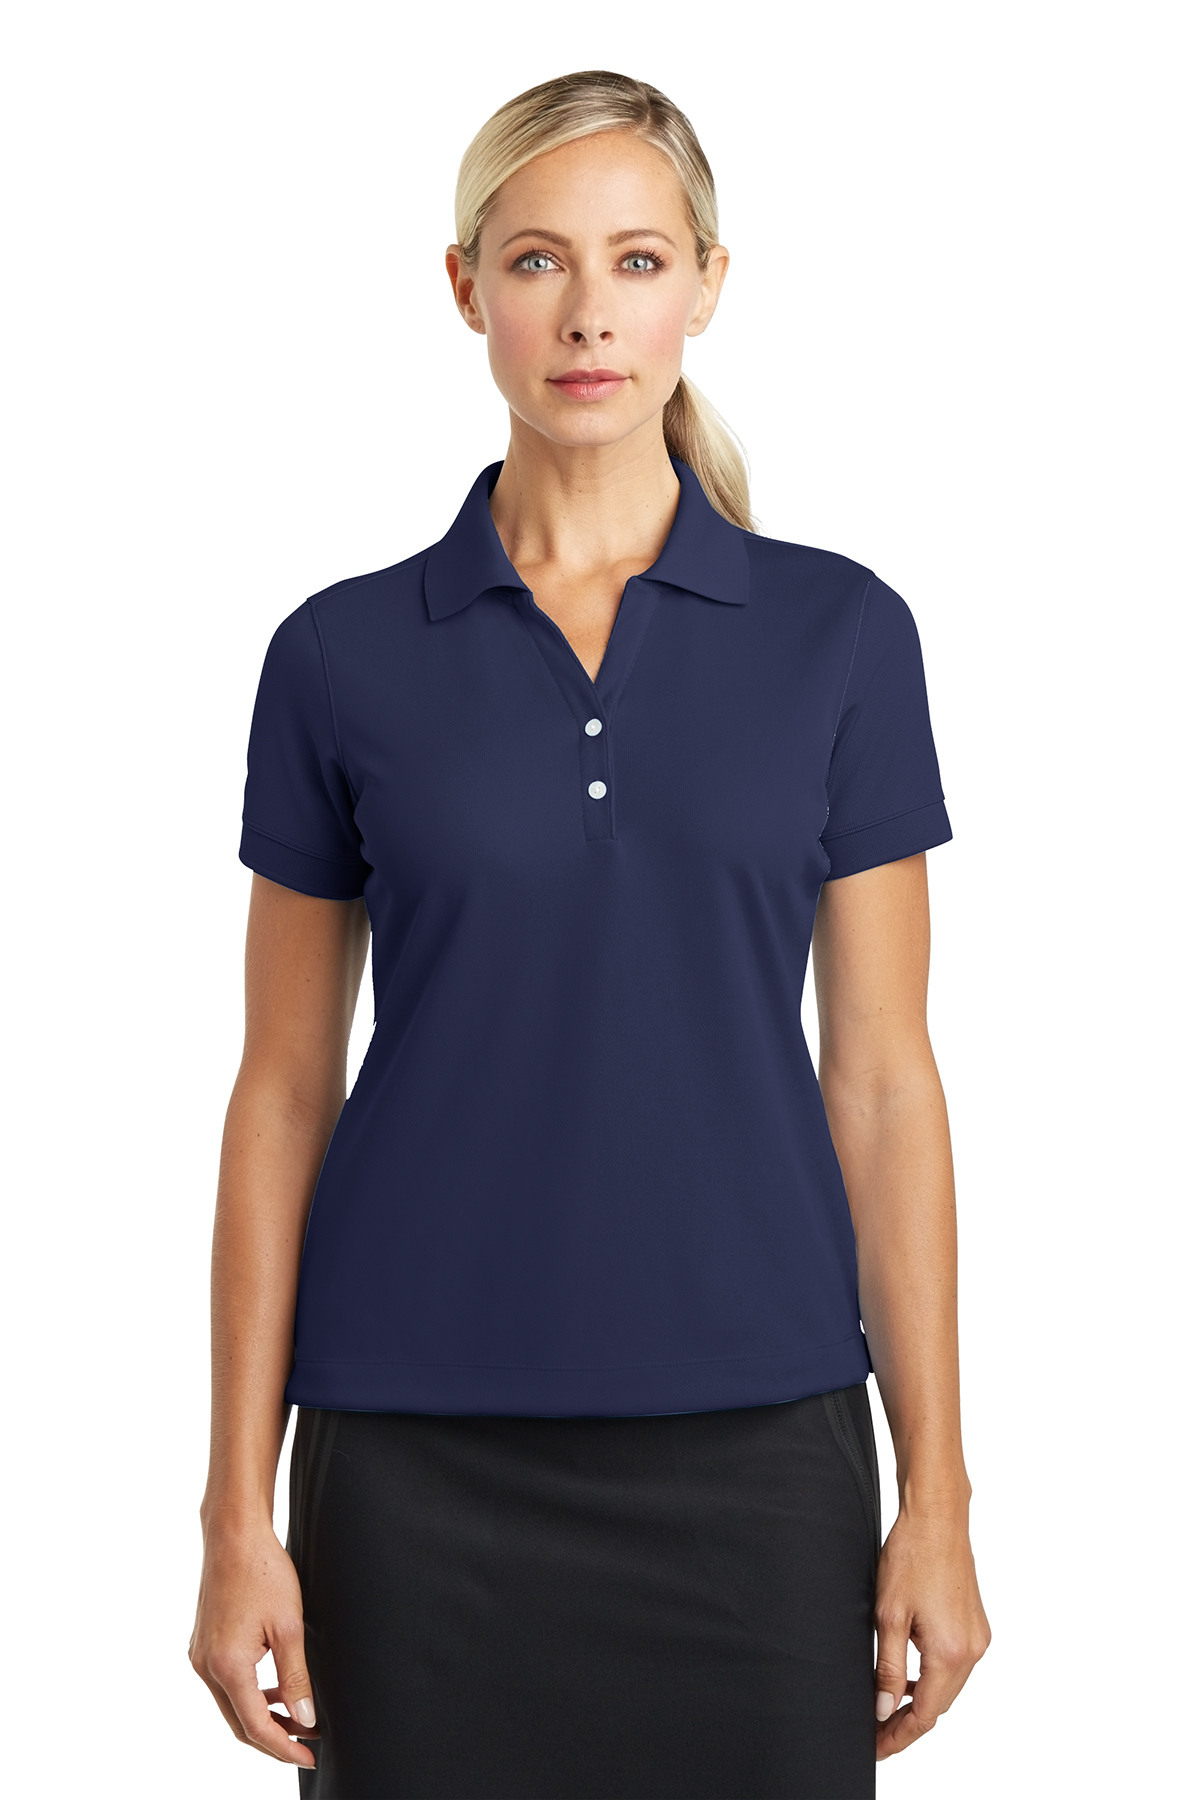 d65b2b4cc482 Nike Ladies Dri-FIT Classic Polo